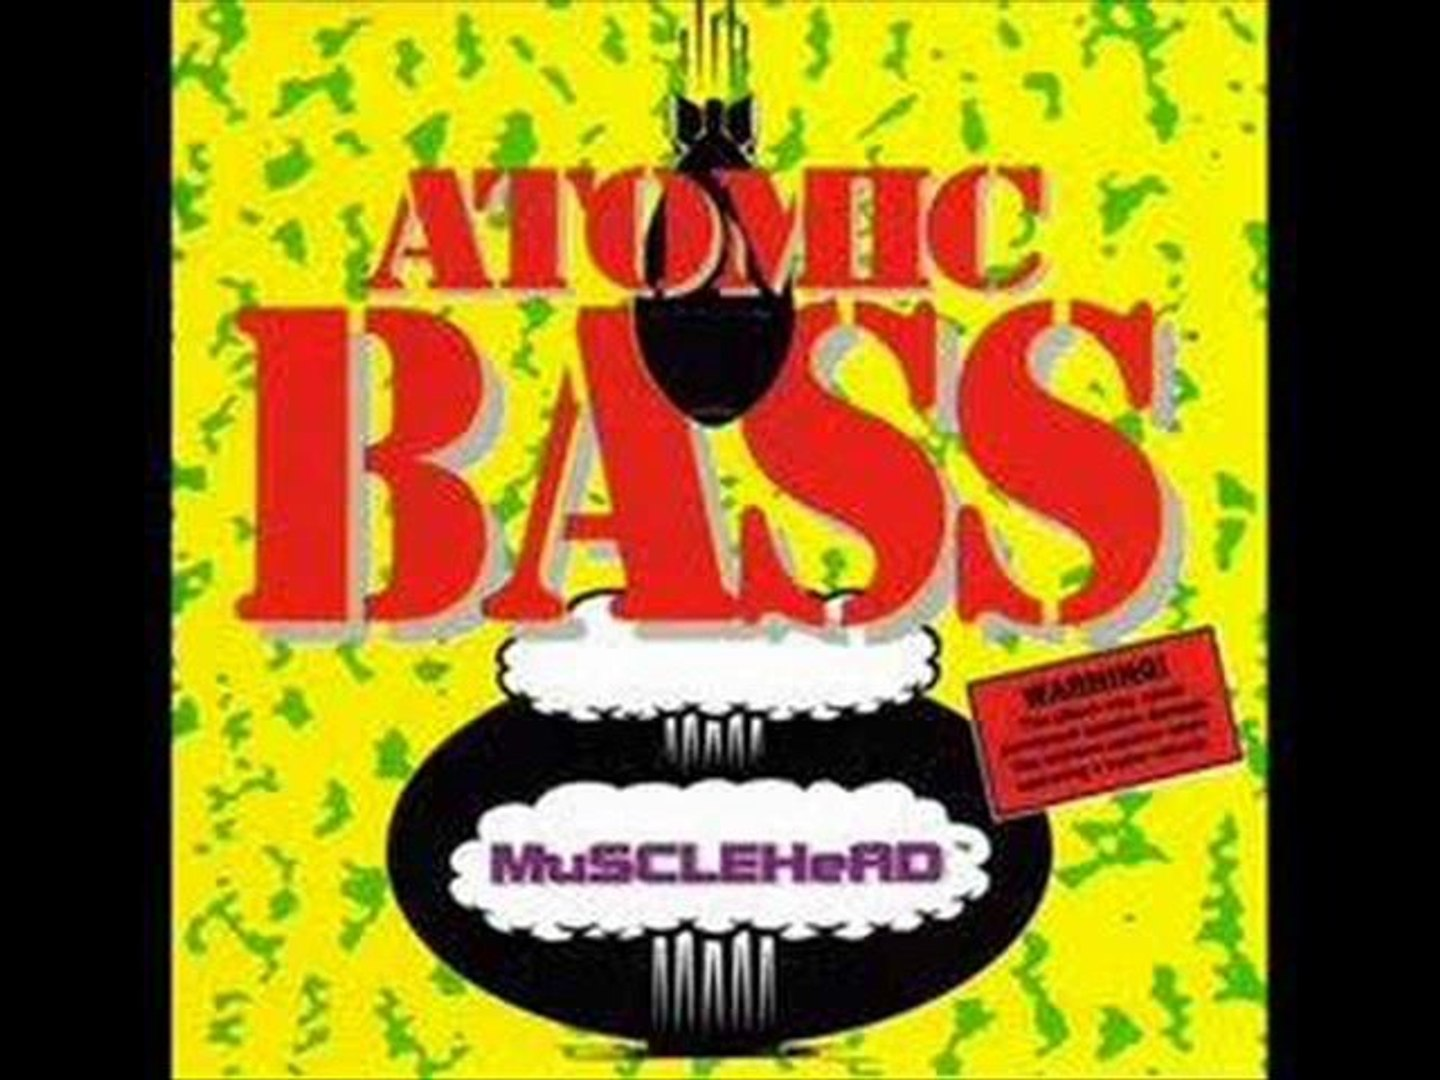 Big Tittie Bass - Musclehead (Atomic Bass)